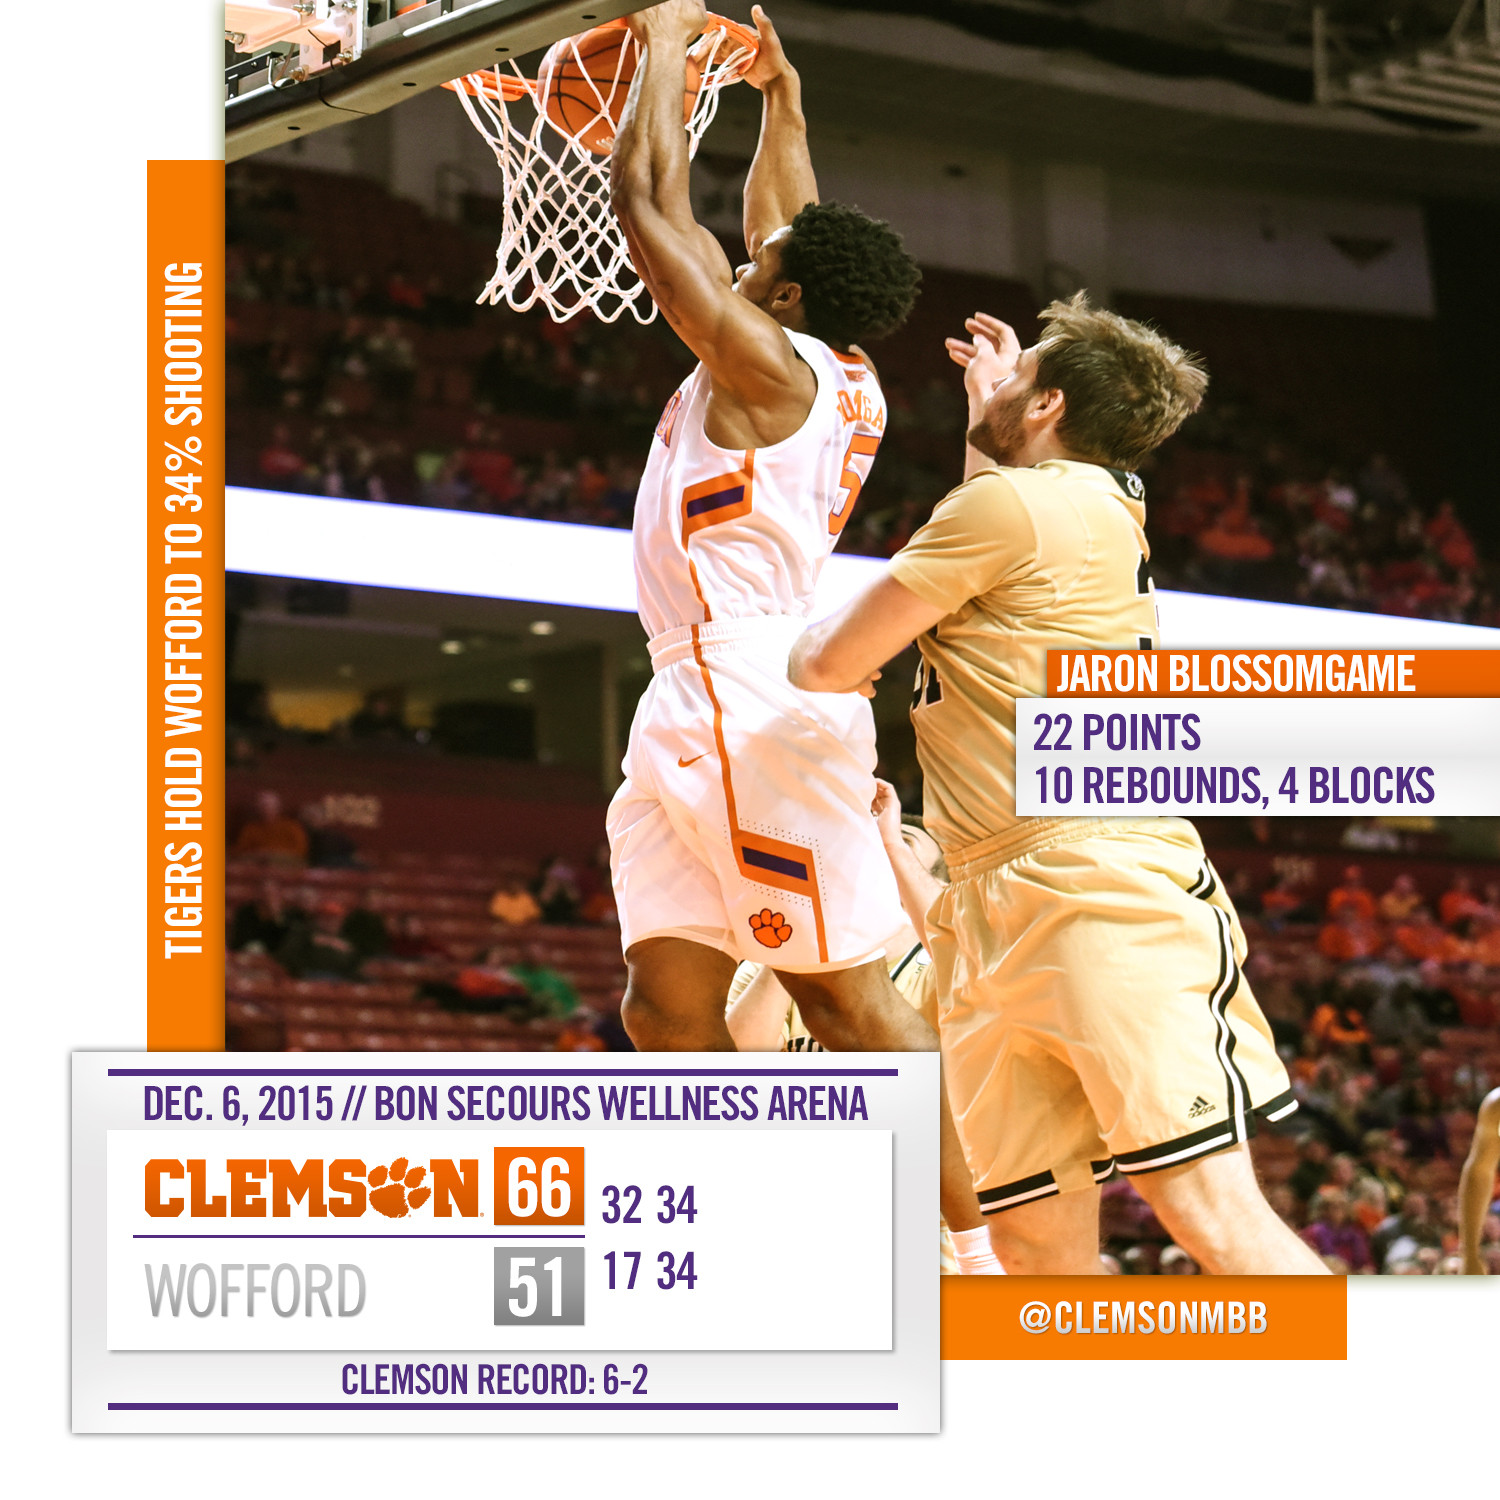 Tigers Down Wofford, 66-51